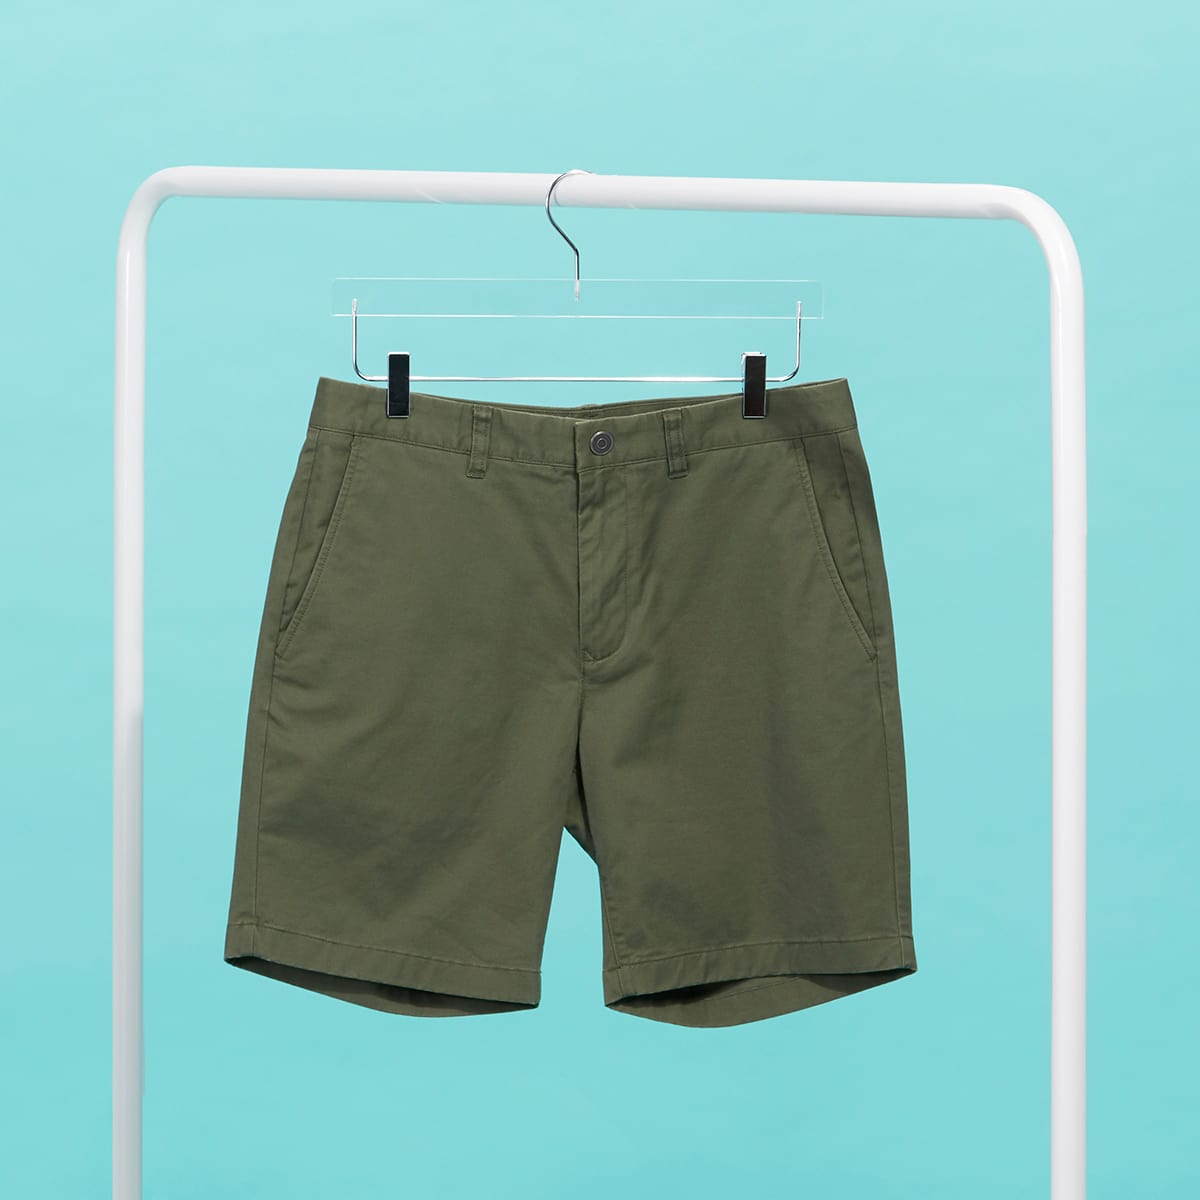 Green shorts for men